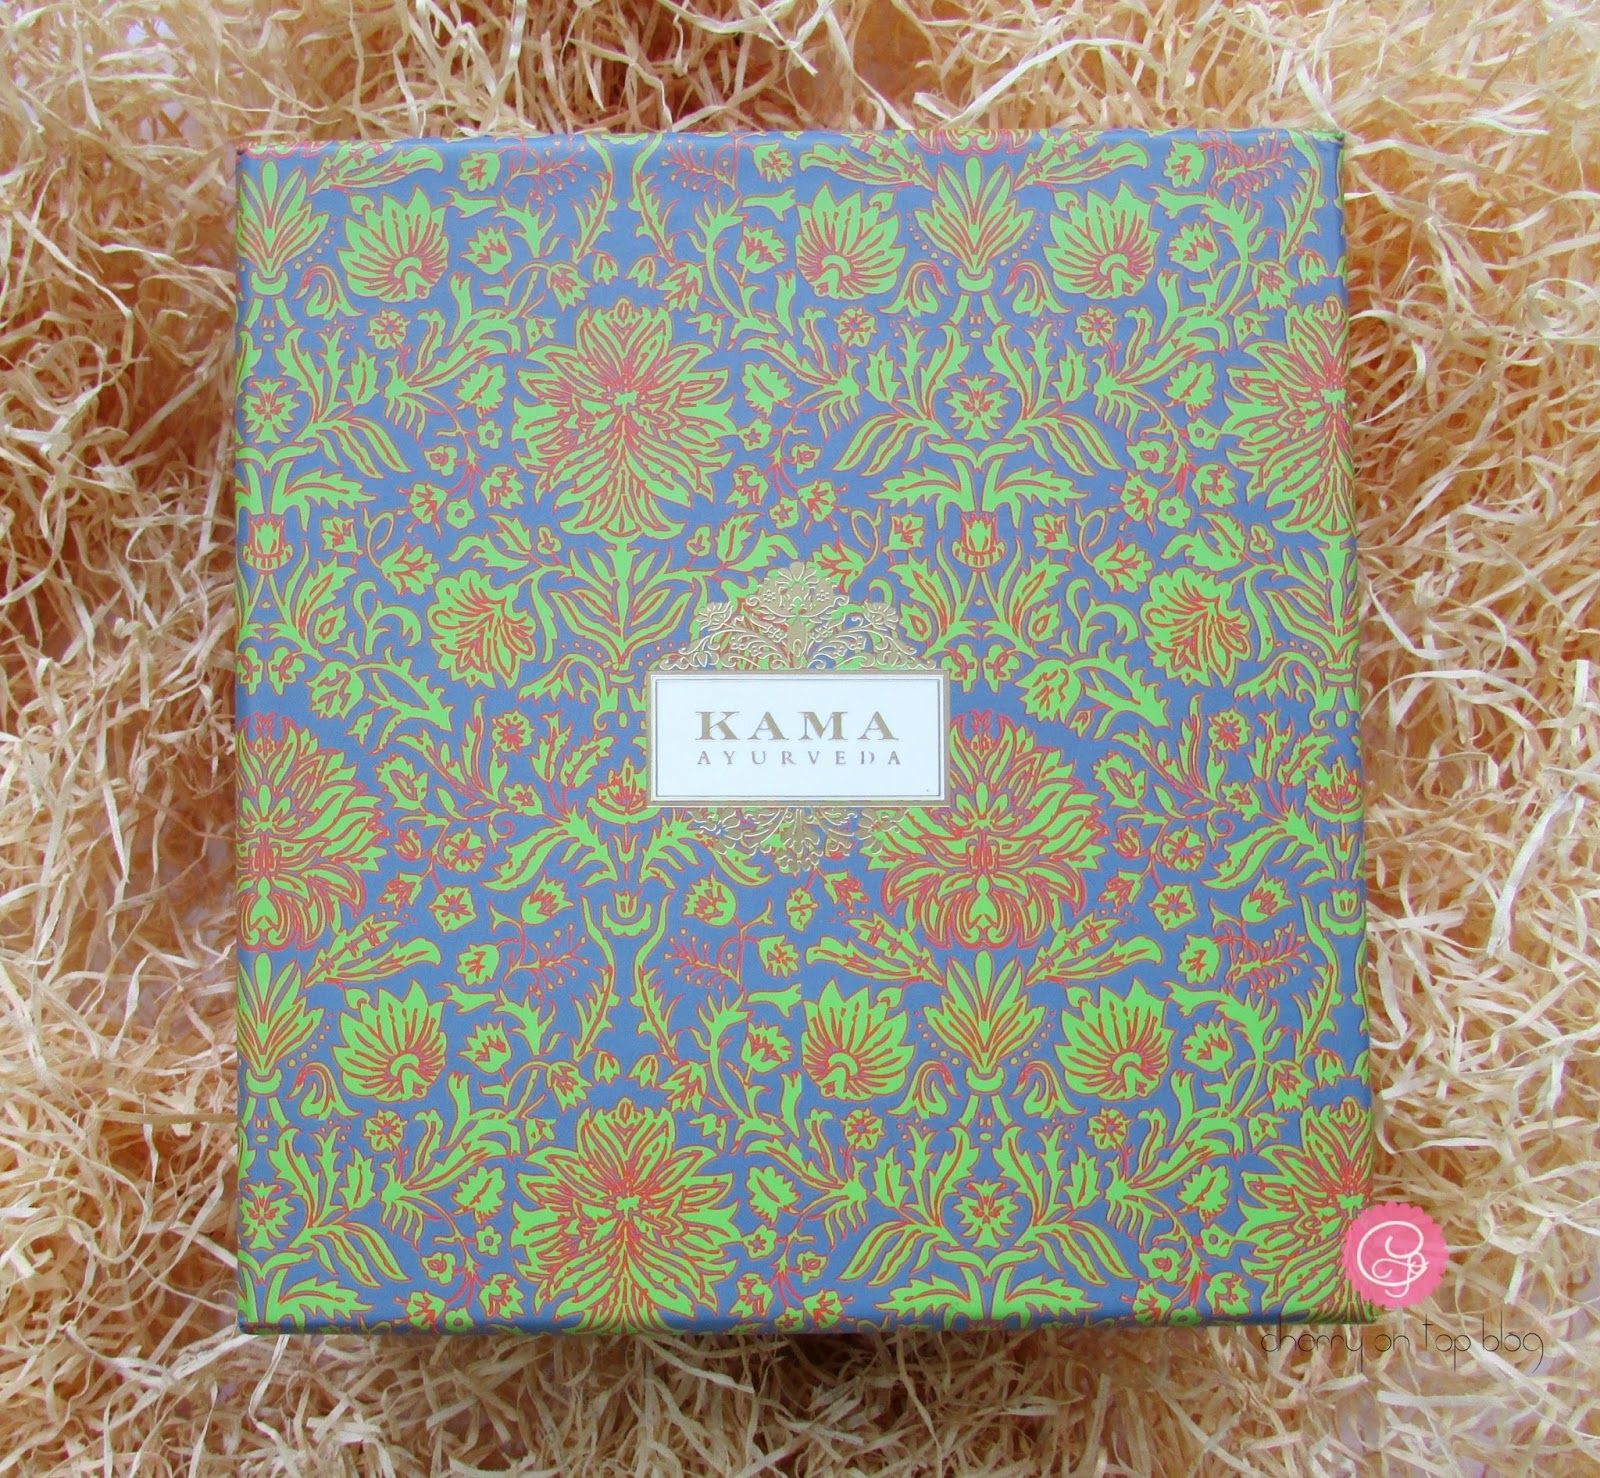 Kama Ayurveda Festive Gift Boxes for Durga Puja| Cherry On Top Blog